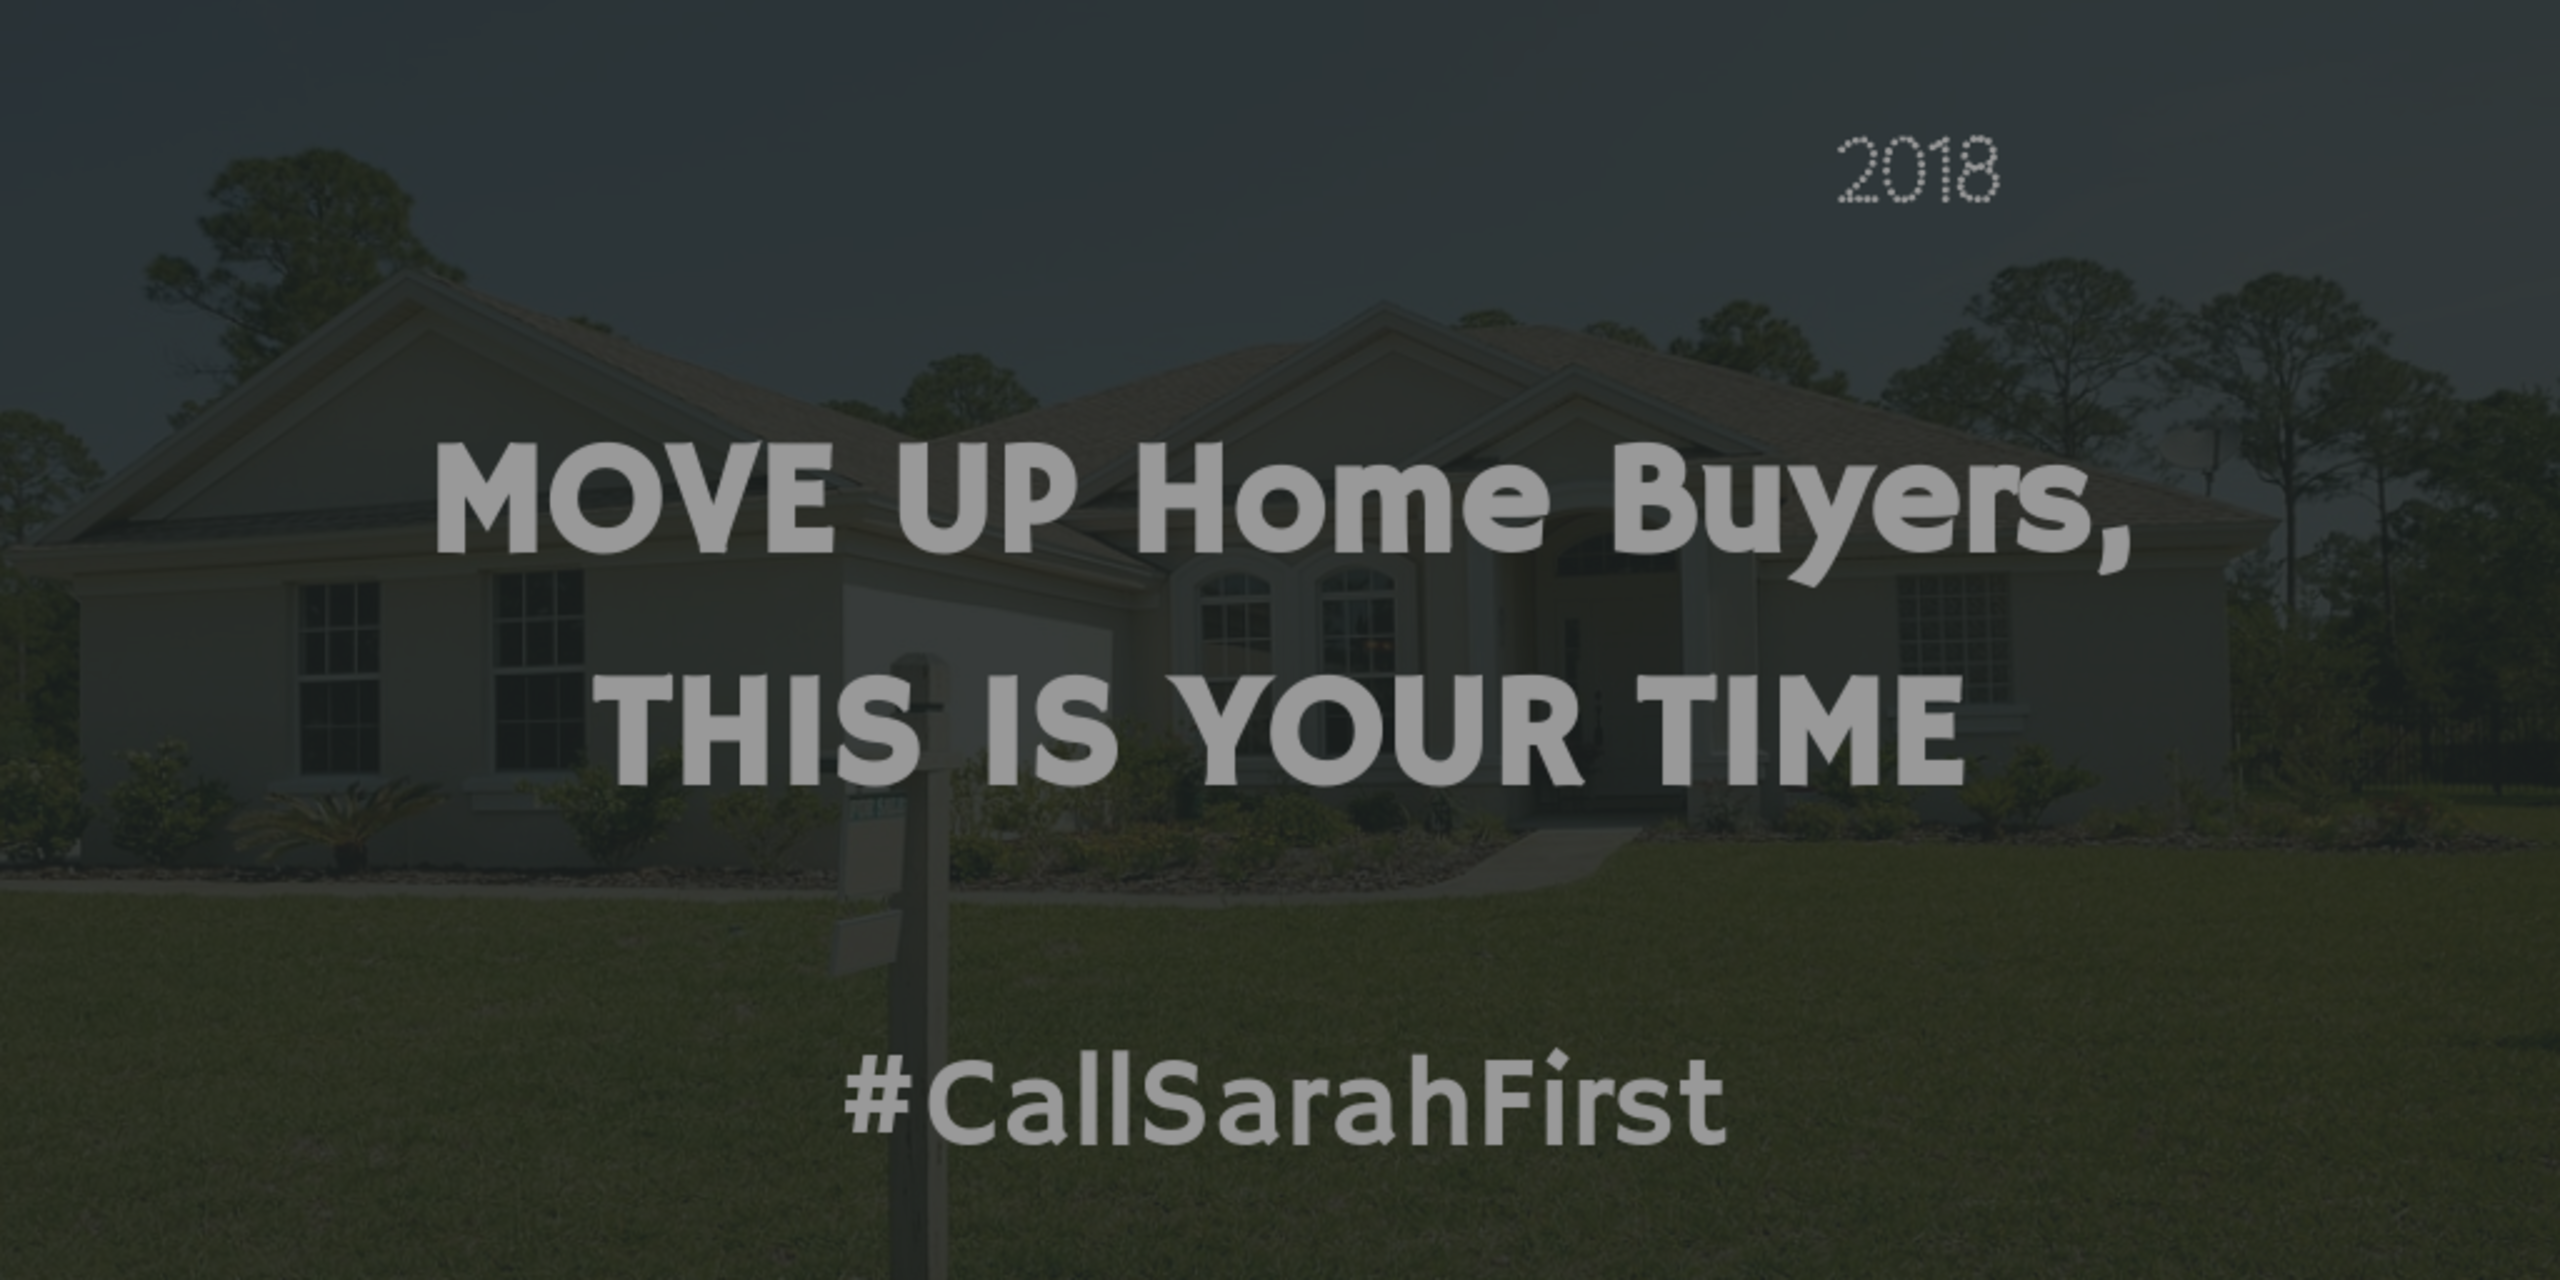 MOVE UP Home Buyers, THIS IS YOUR TIME